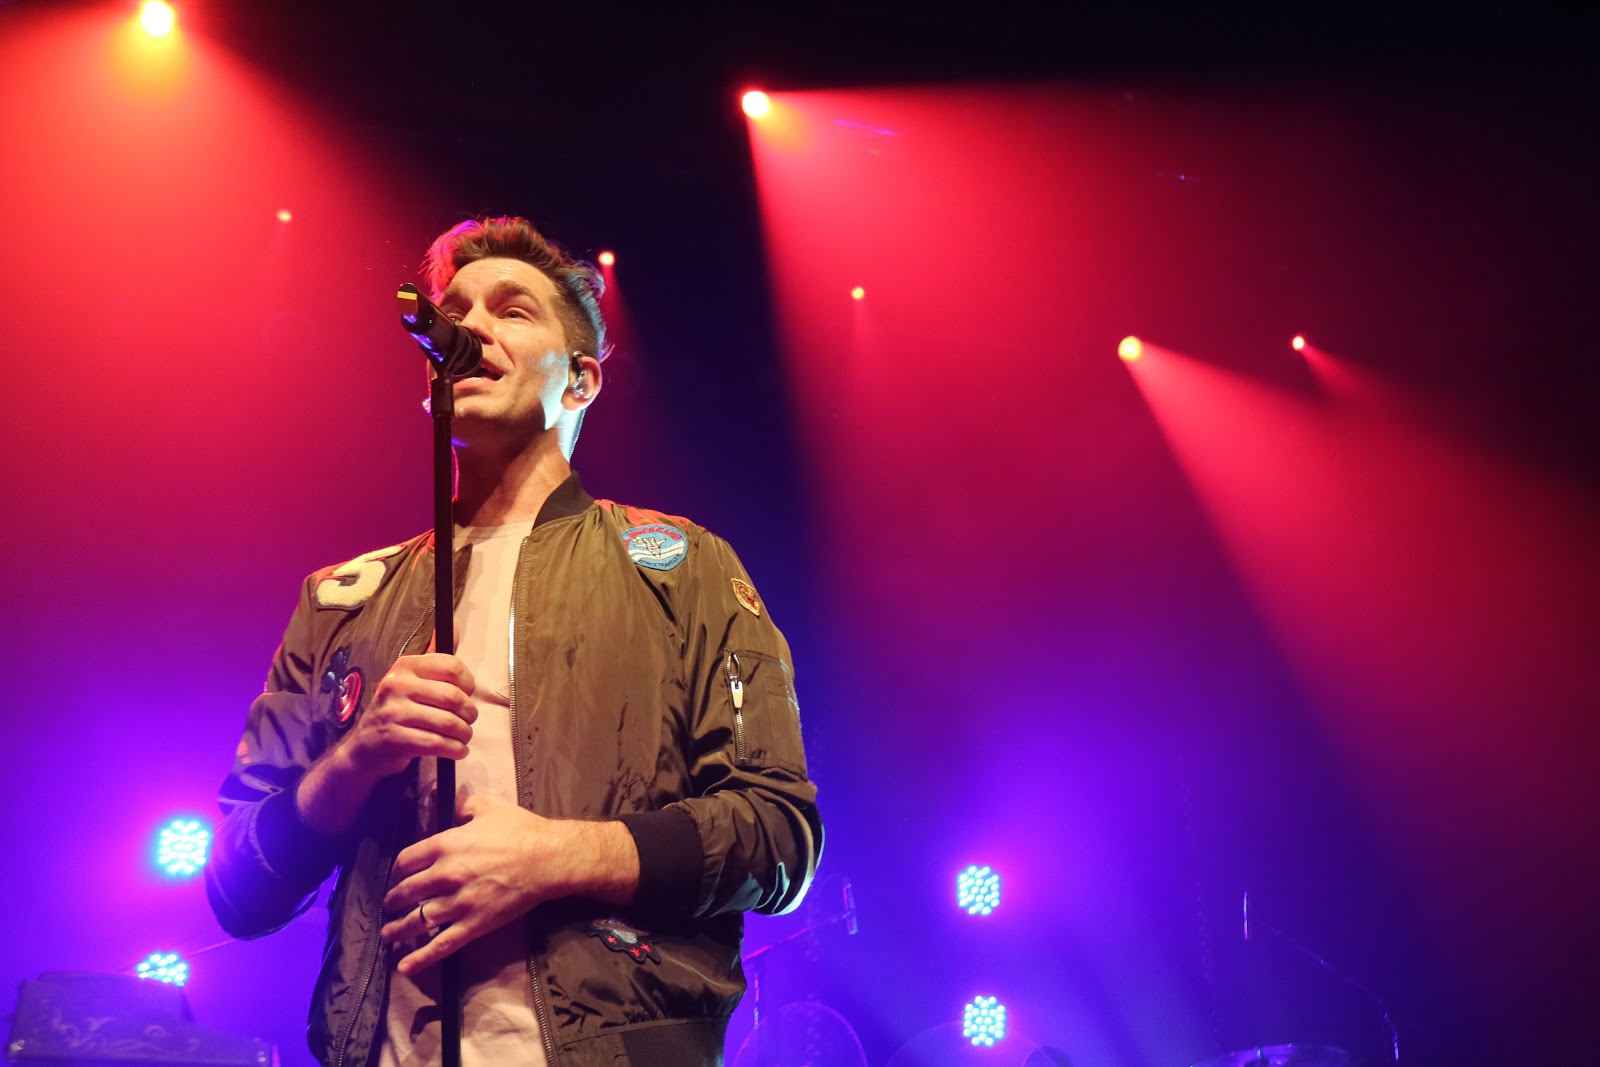 Concert Review: Andy Grammar at the Vogue Theatre